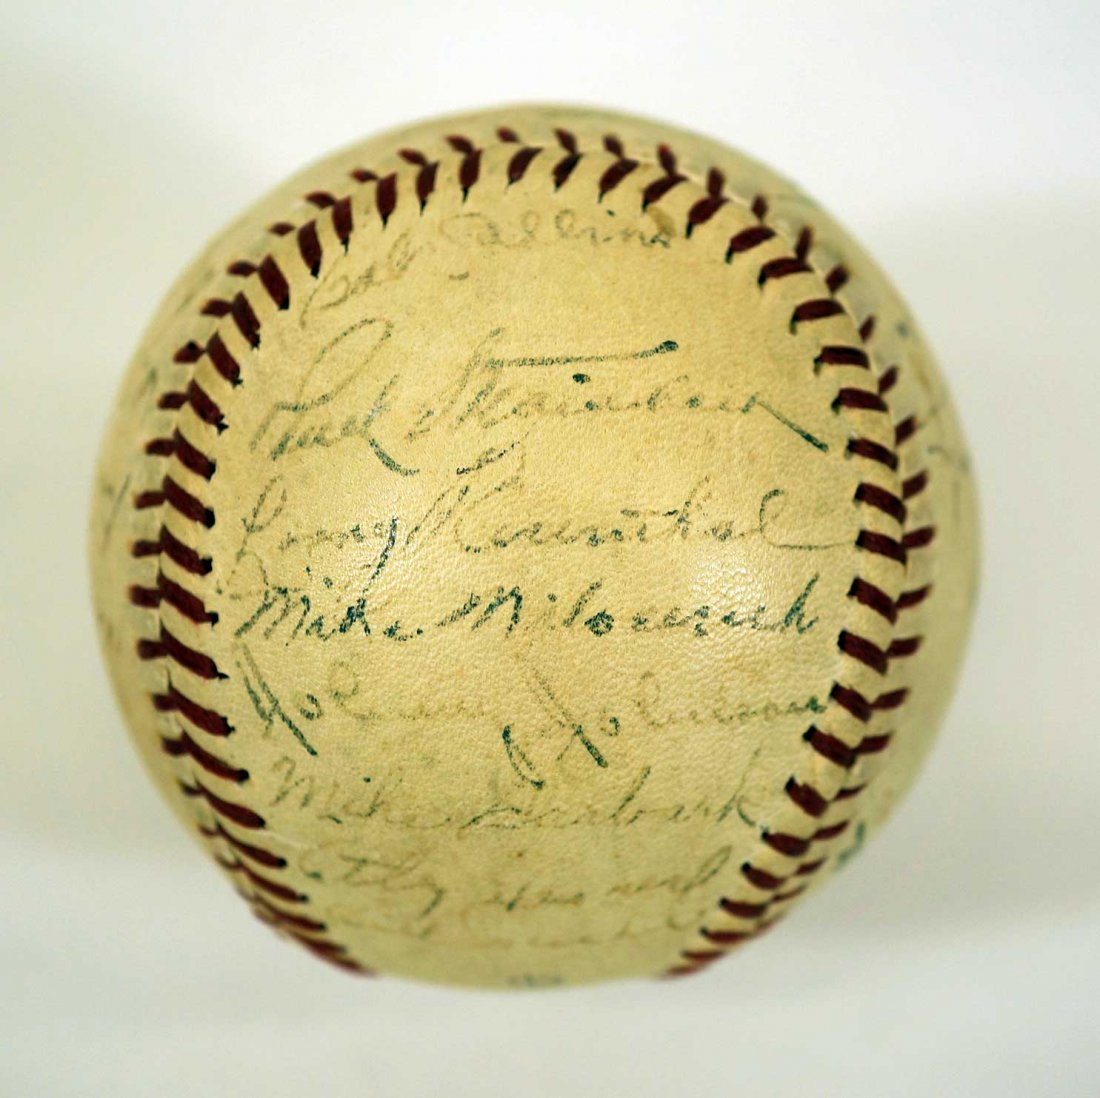 1944 New York Yankees Team Signed Baseball. Contains 27 - 3